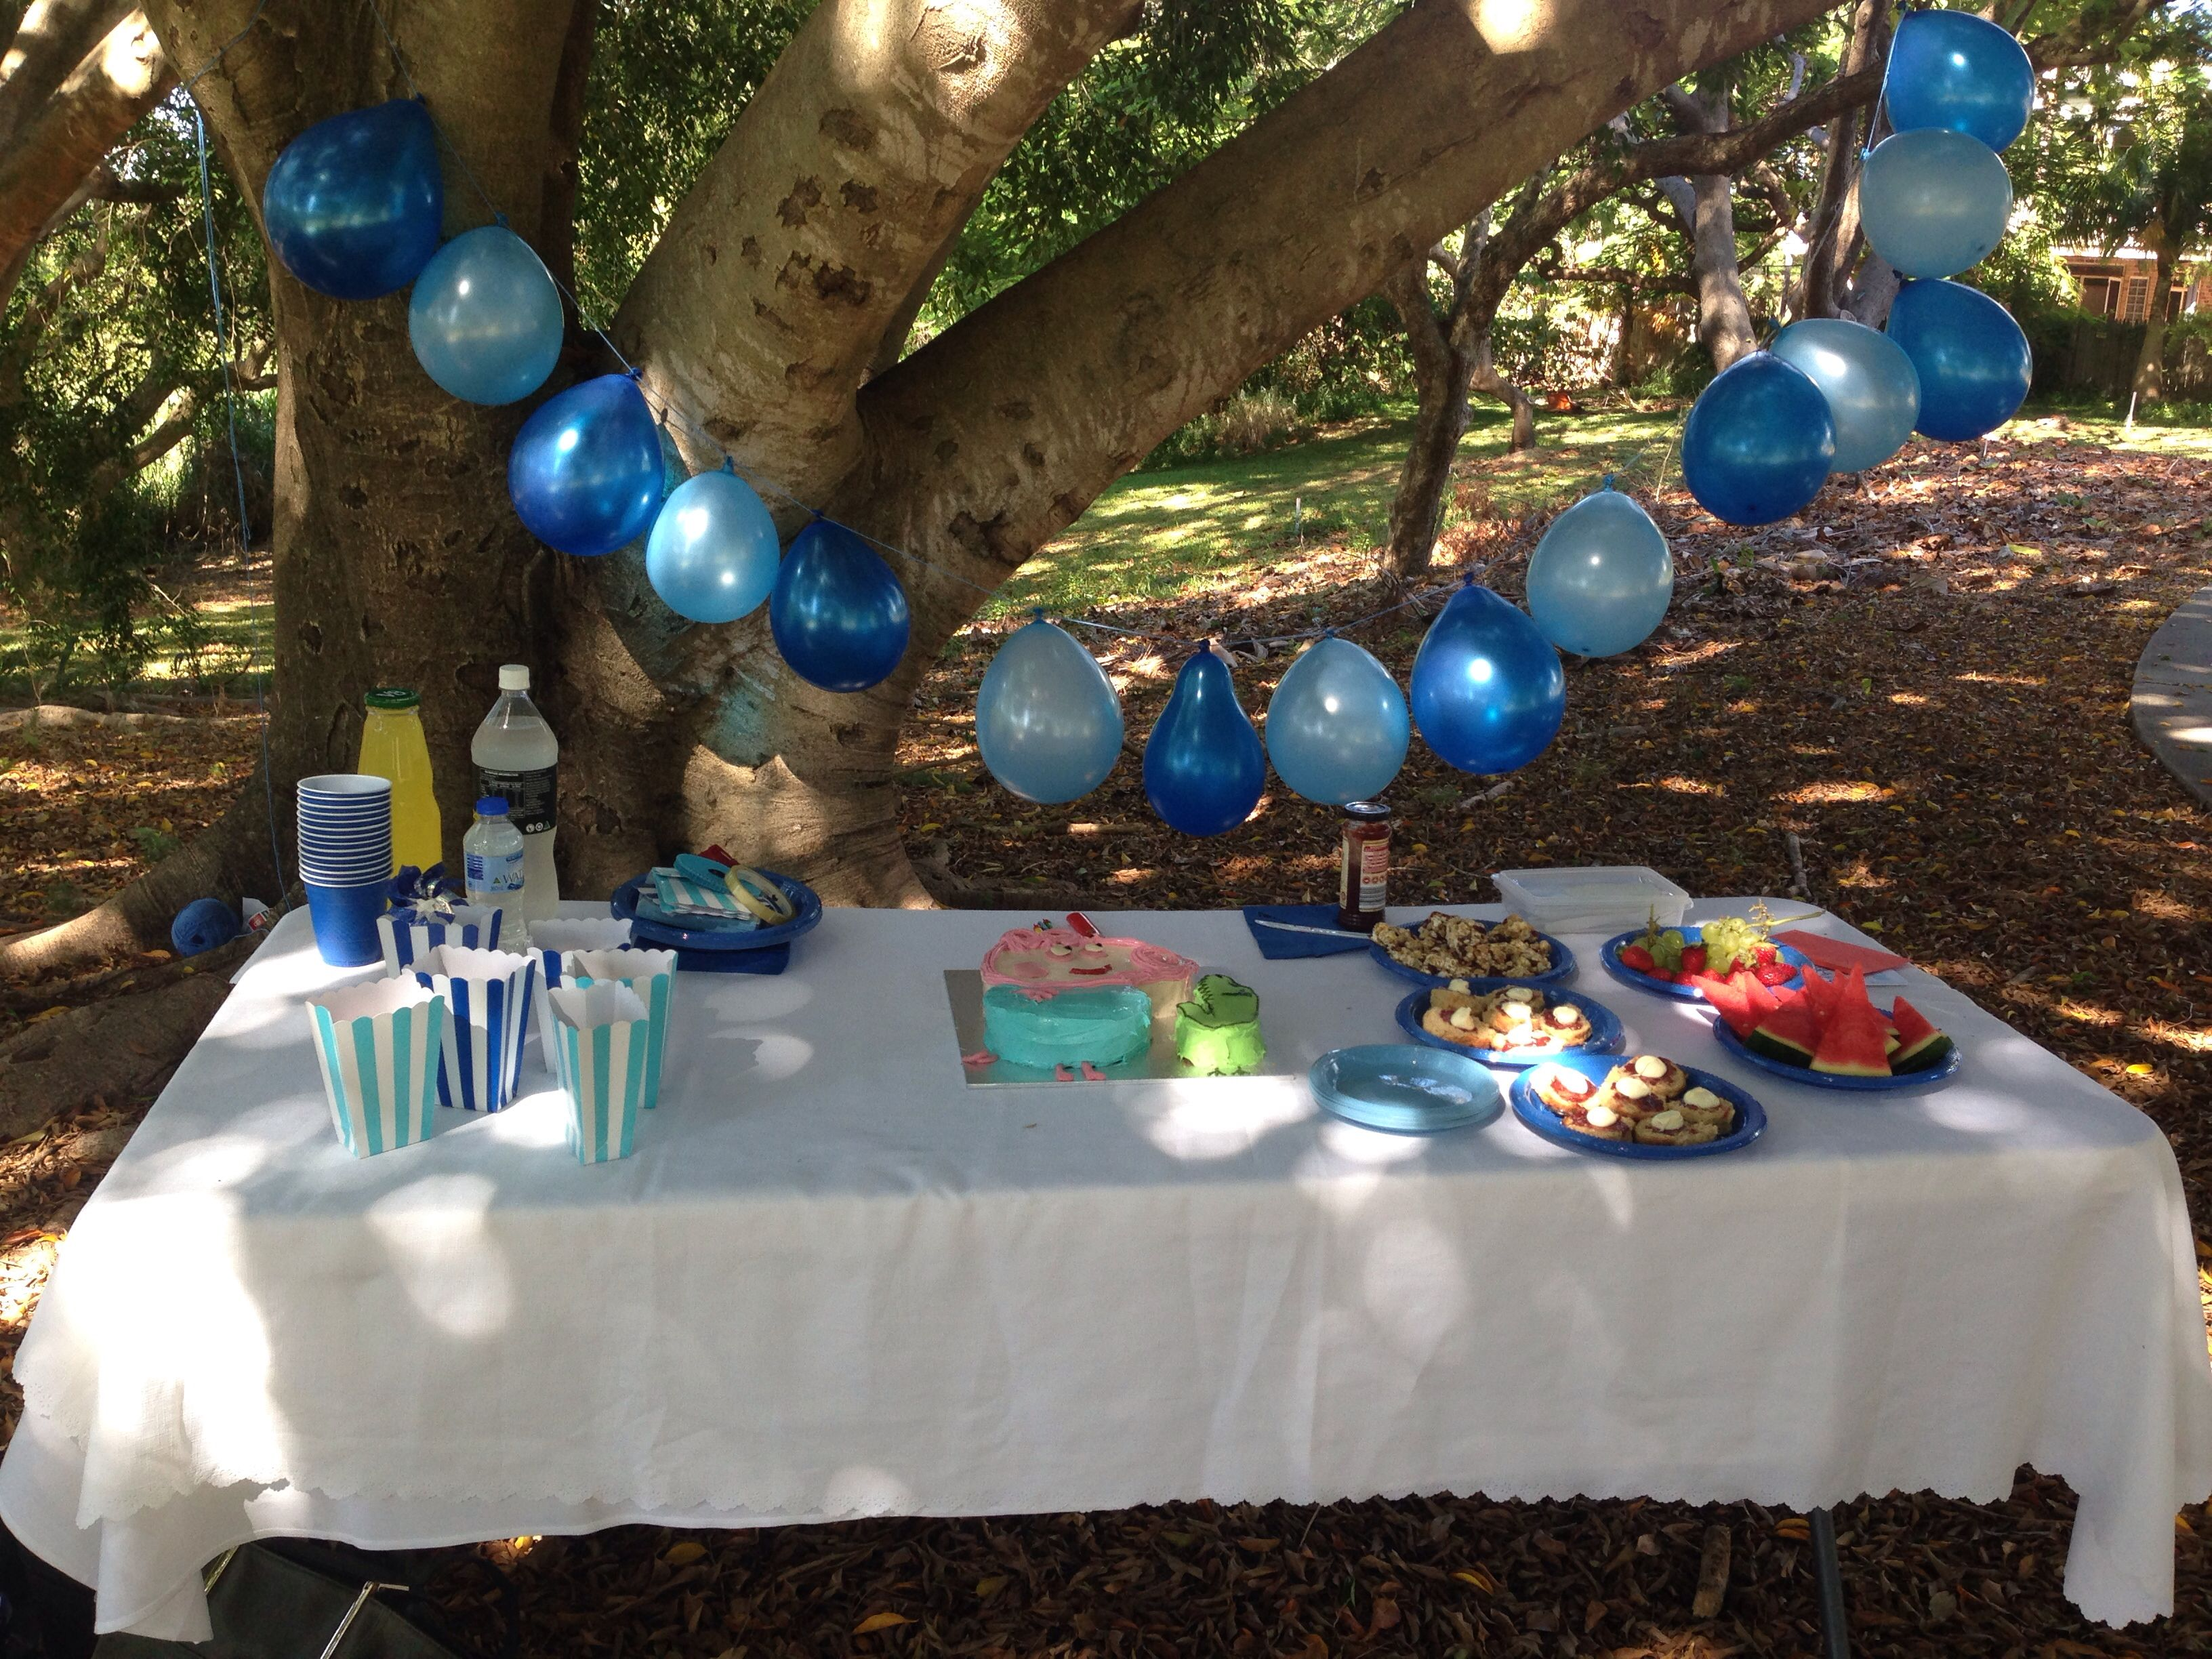 Simple String Of Balloons Makes Great Birthday Party Decorations At A Park